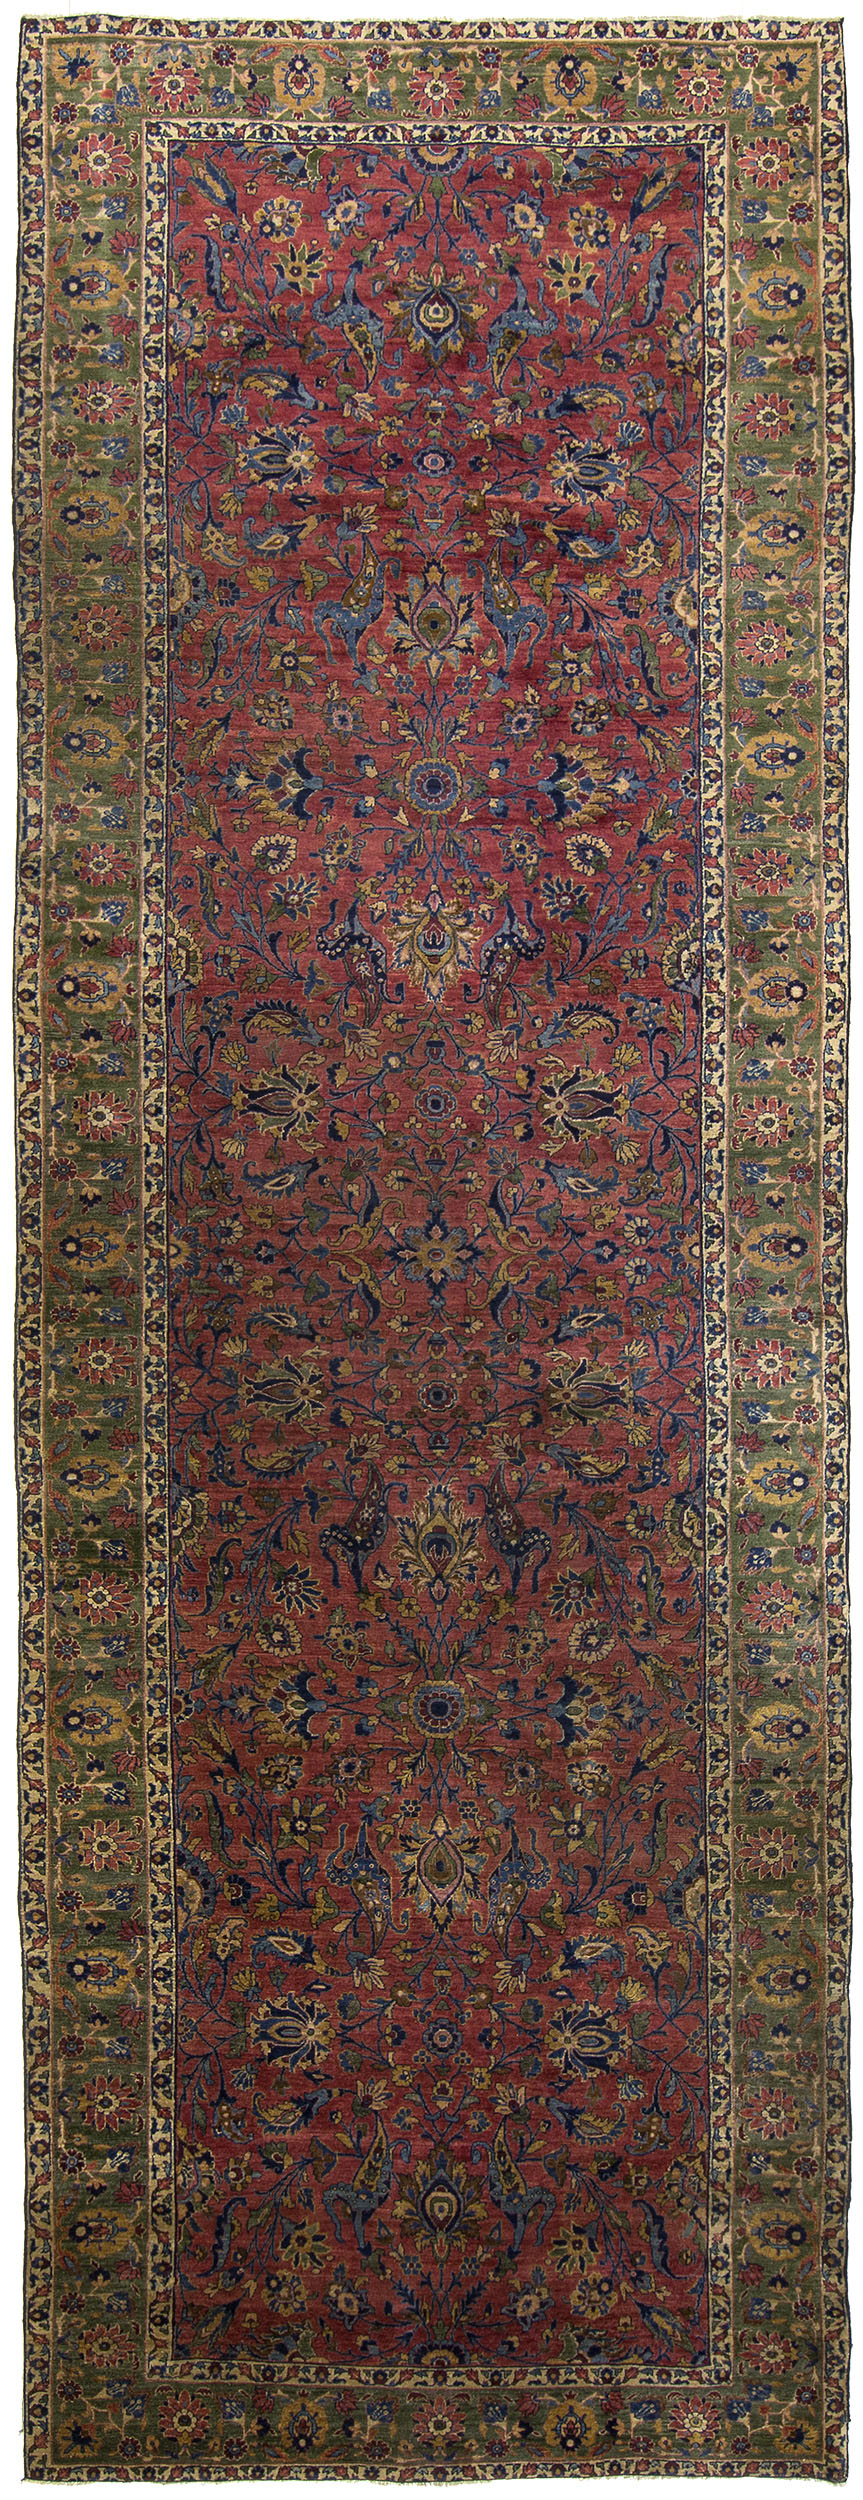 "Sarouk Gallery Carpet 18' 0"" x 6' 0"""